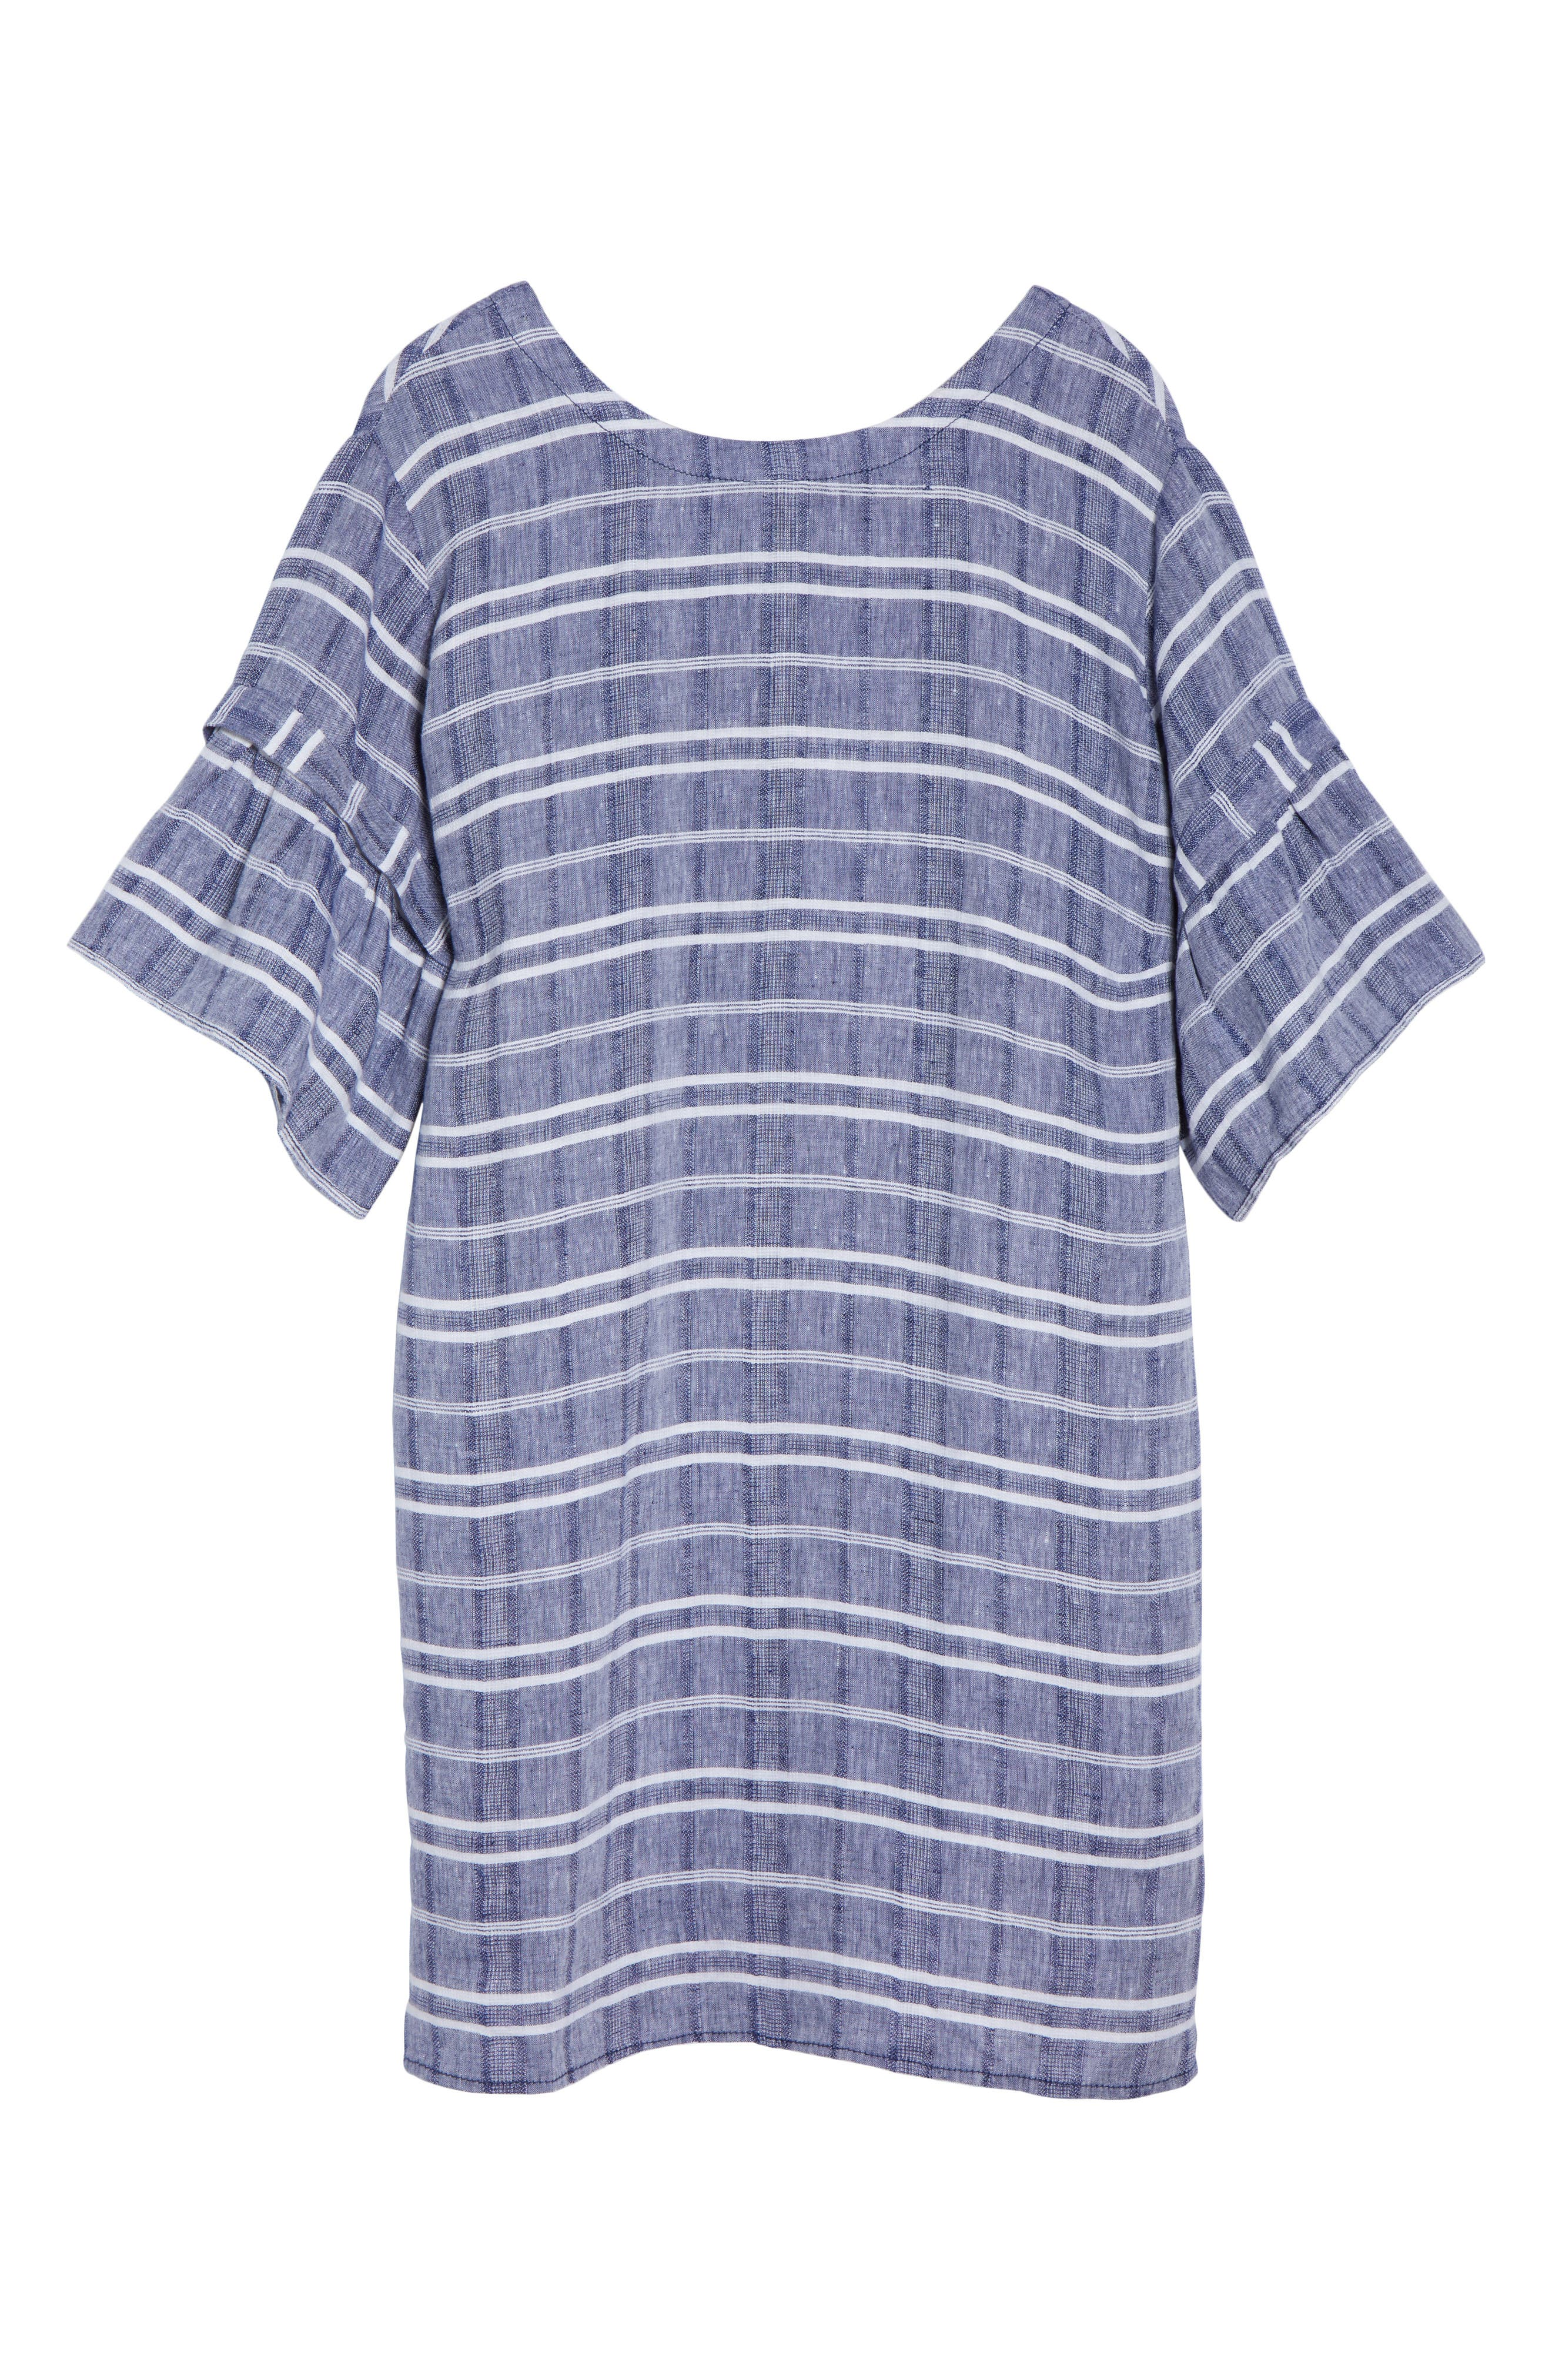 Tie Back Linen Dress,                             Alternate thumbnail 6, color,                             Navy- White Plaid